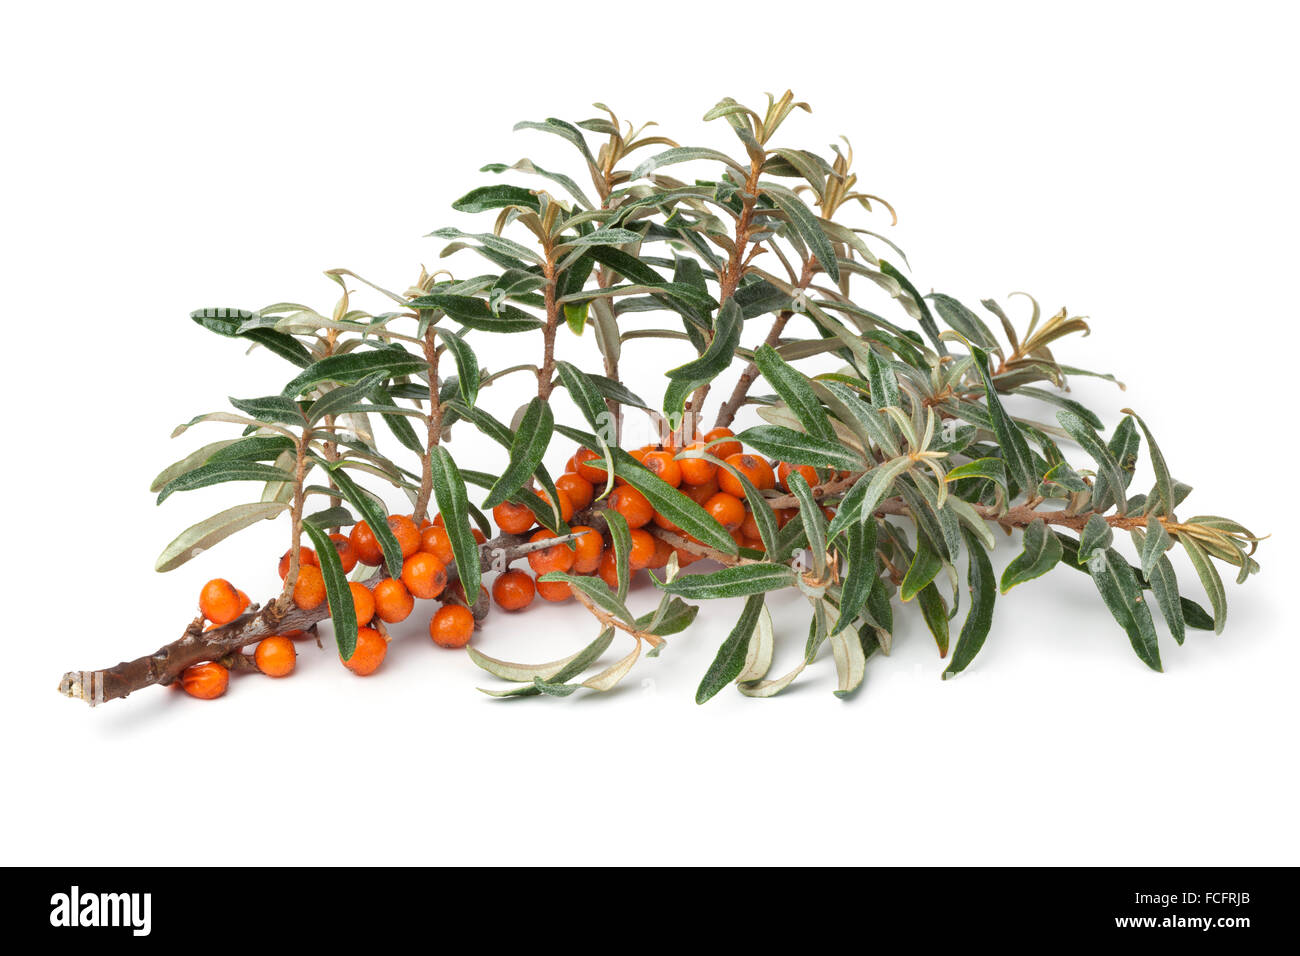 Twig of fresh common sea-buckthorn with orange berries on white background - Stock Image